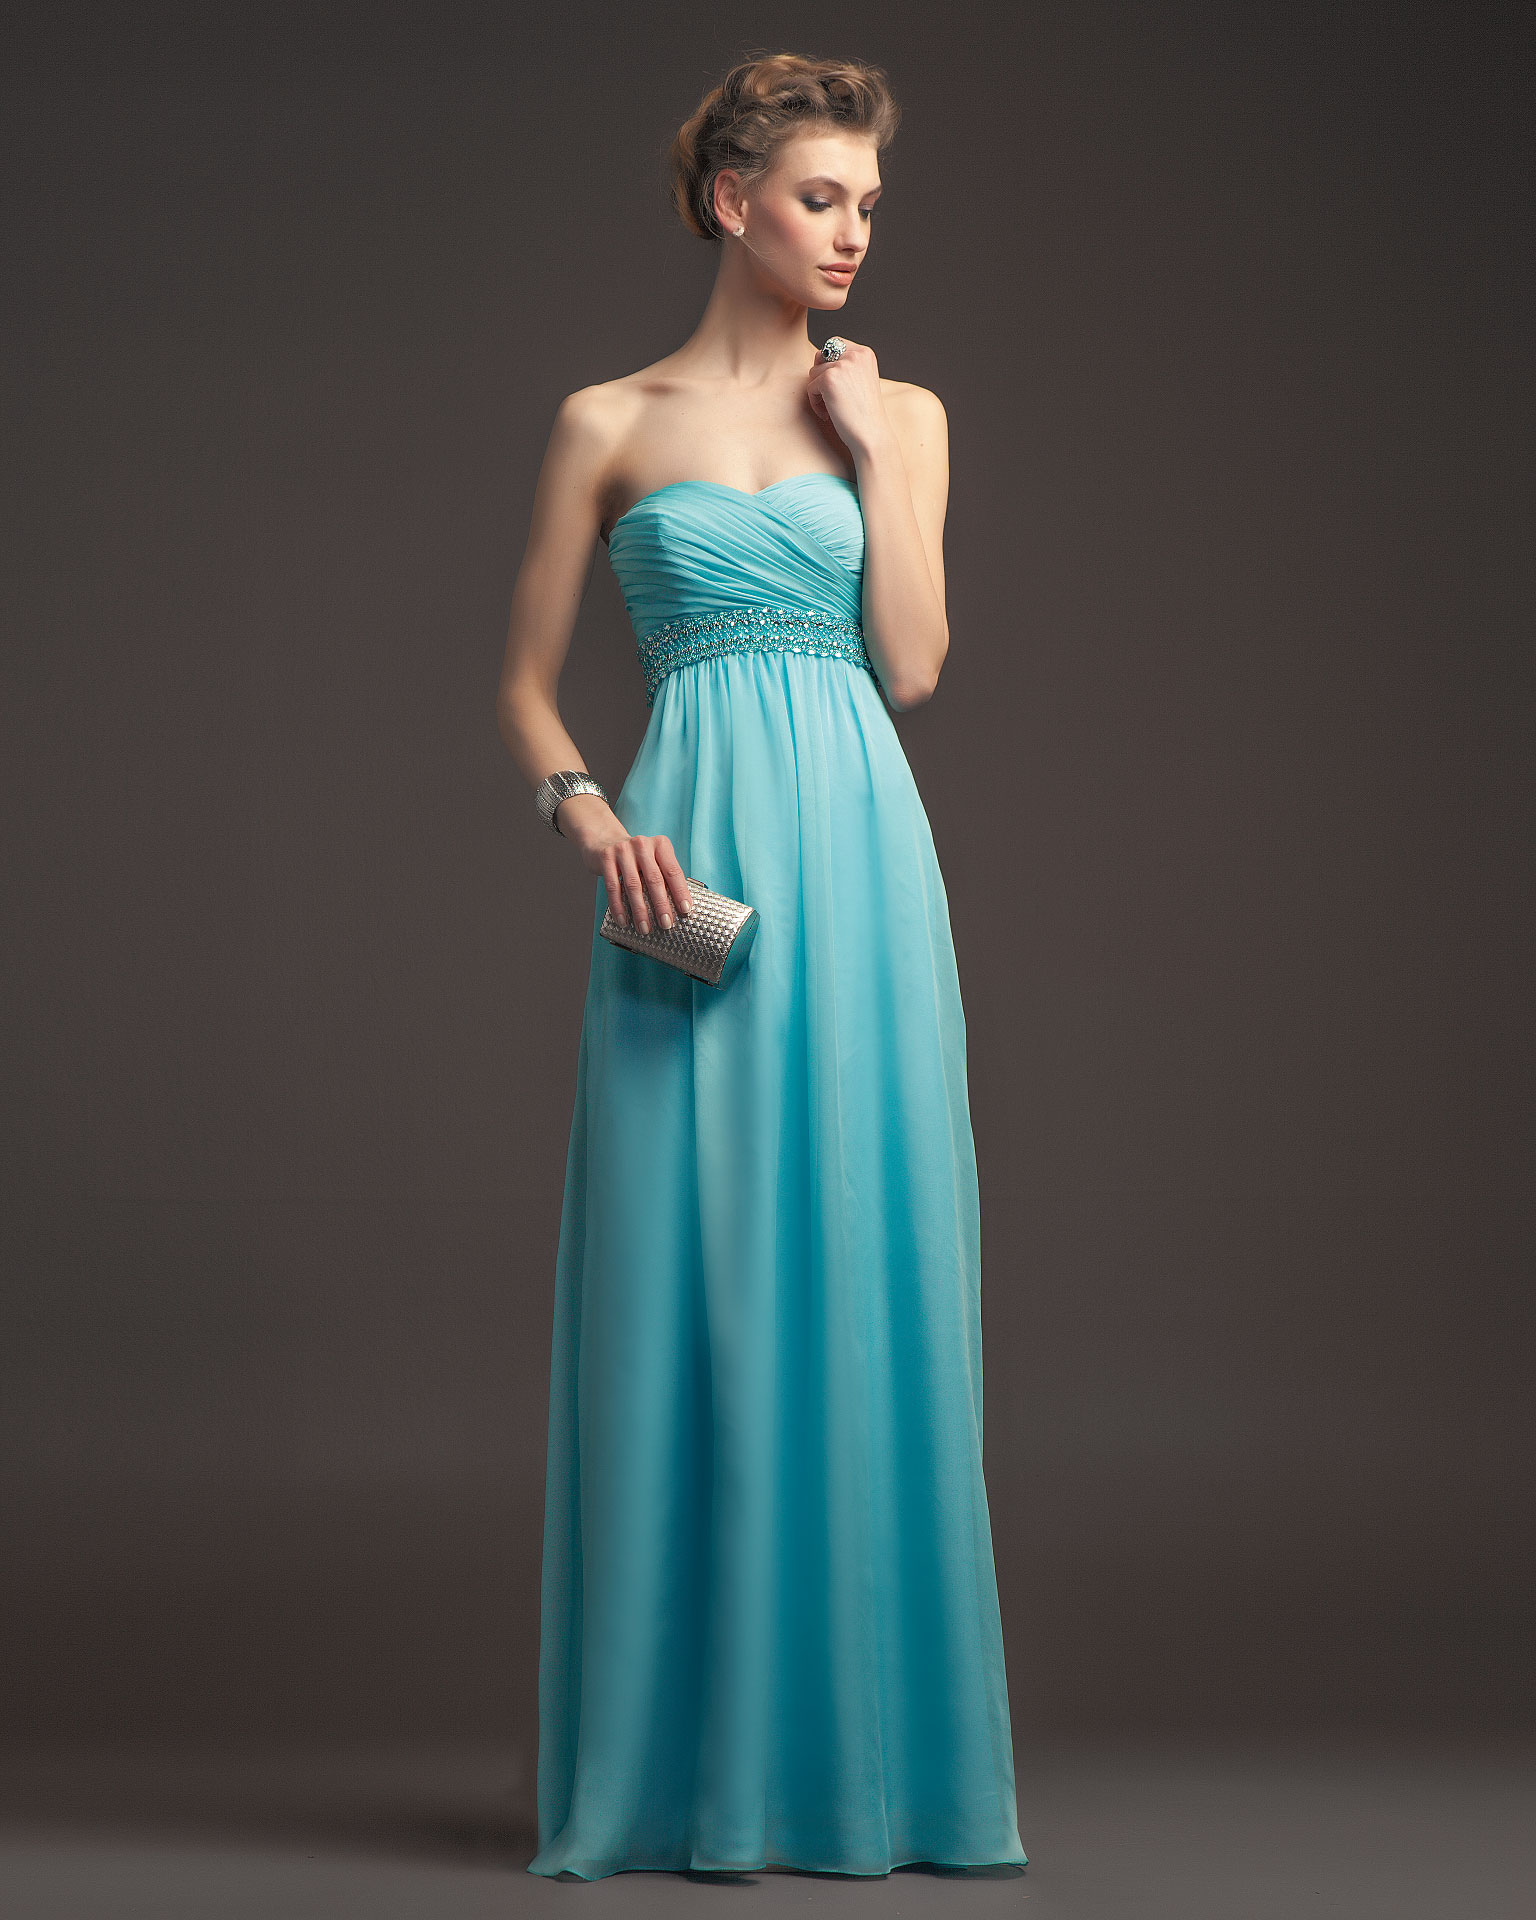 au-charming-sheath-column-strapless-beading-crystal-ruching-floor-length-chiffon-prom-dresses-2382